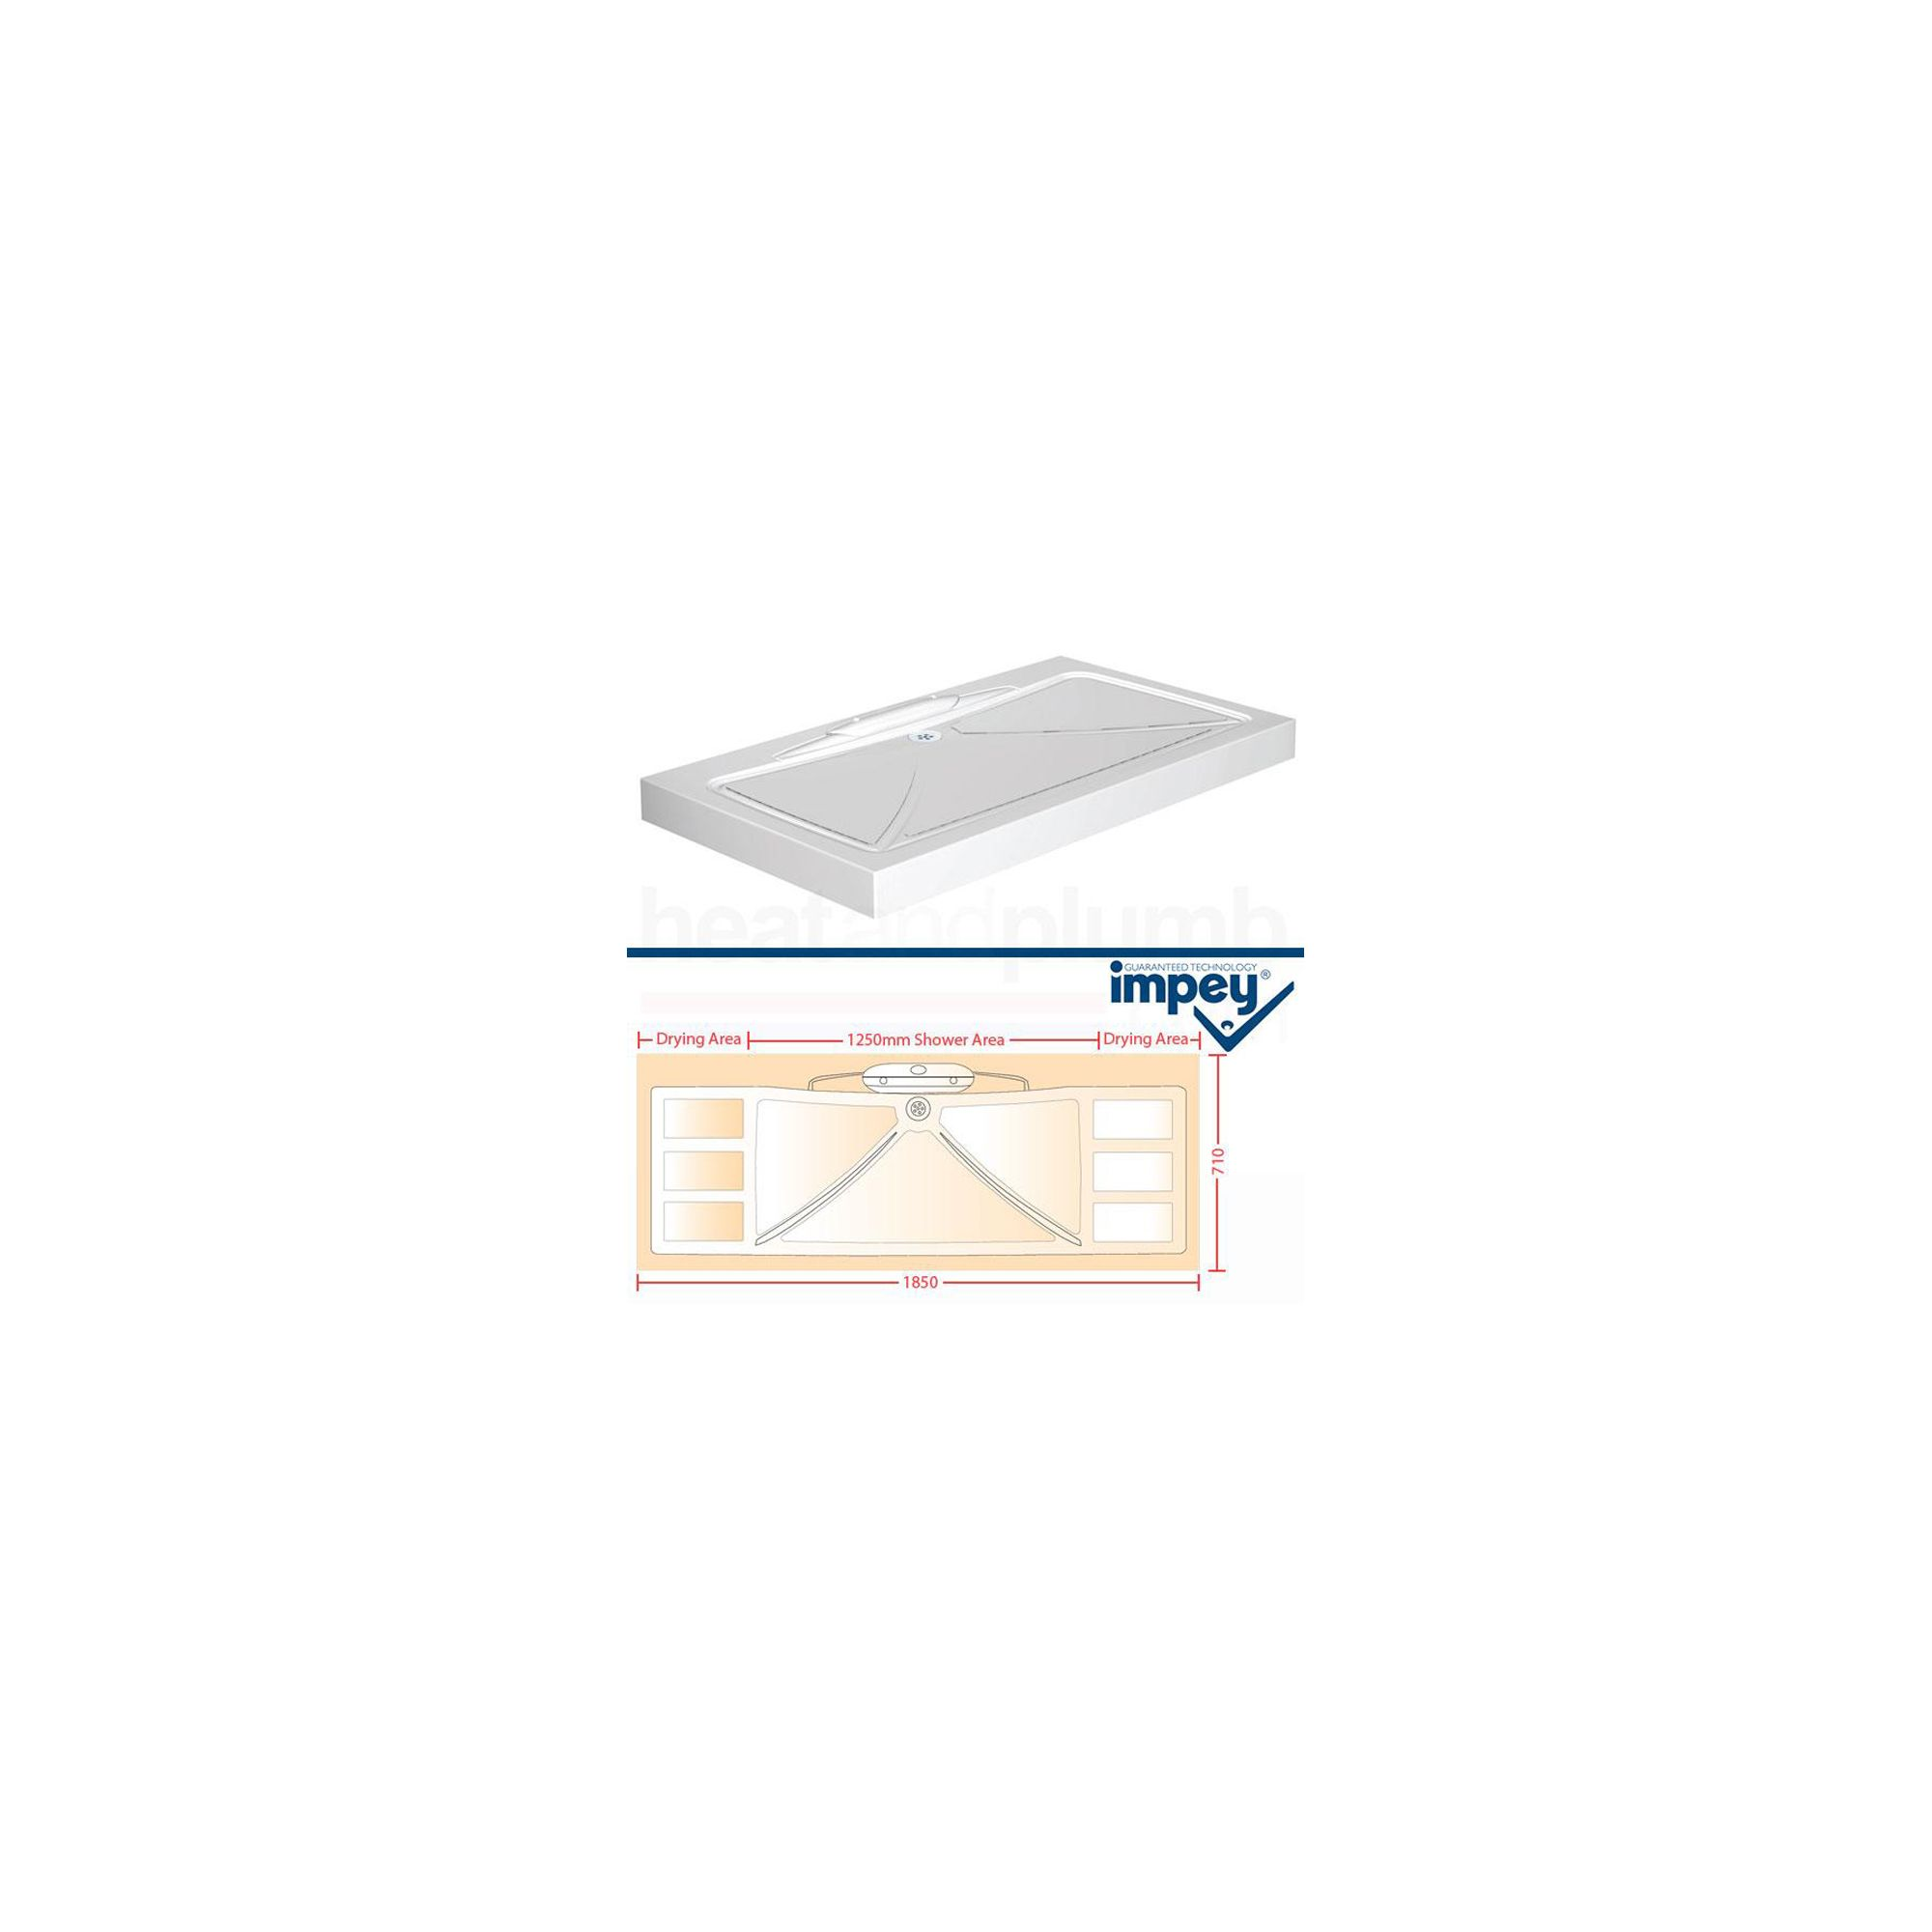 Impey Mendip Shower Tray 1850mm x 710mm at Tesco Direct